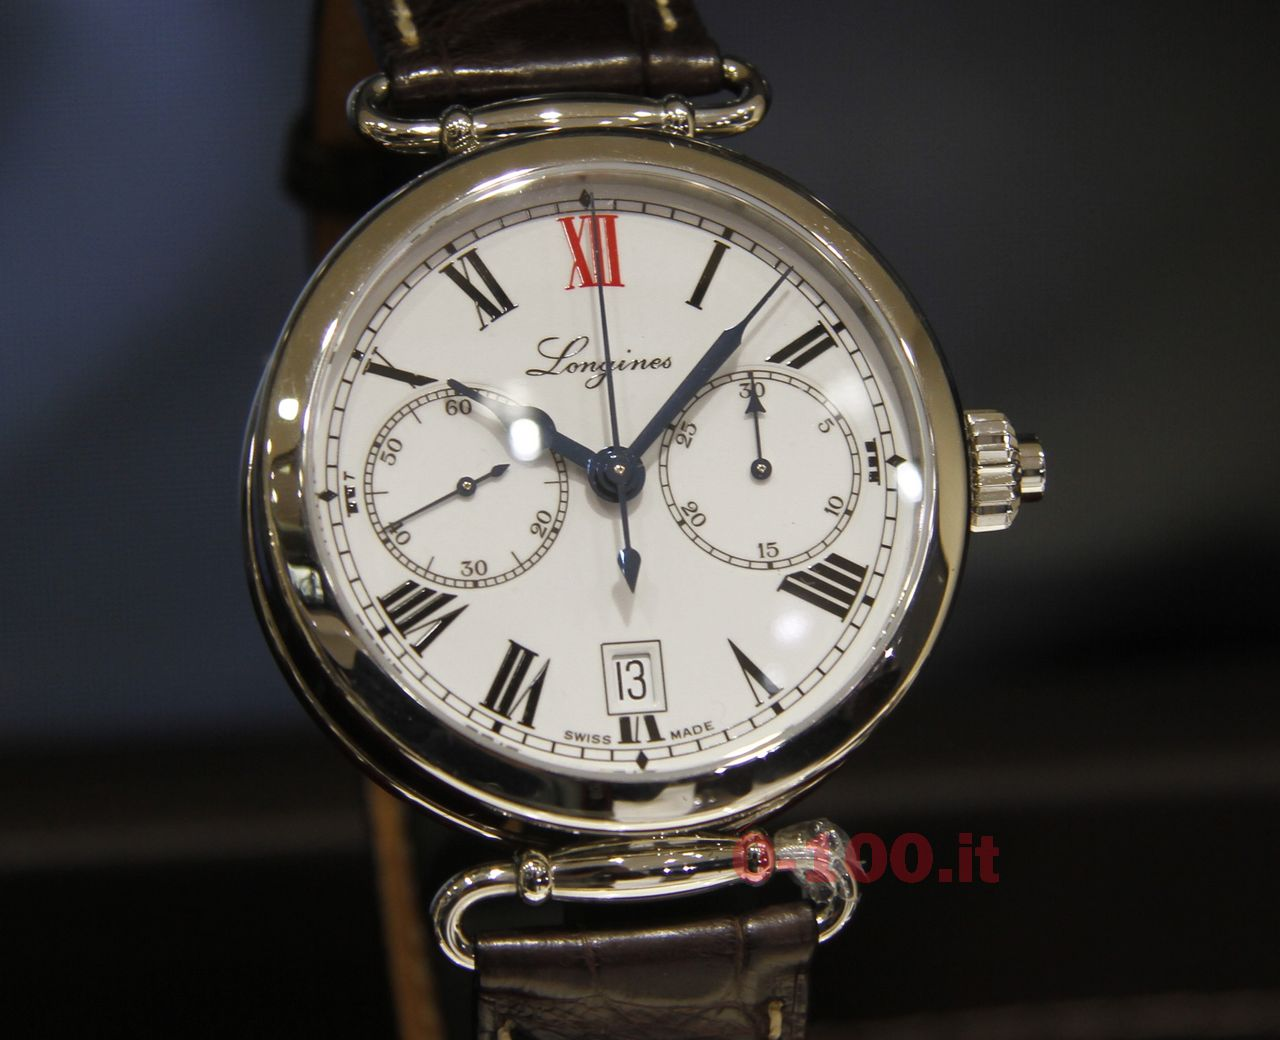 Longines Column-Wheel-Single-Push-Piece-Chronograph-0-100_5